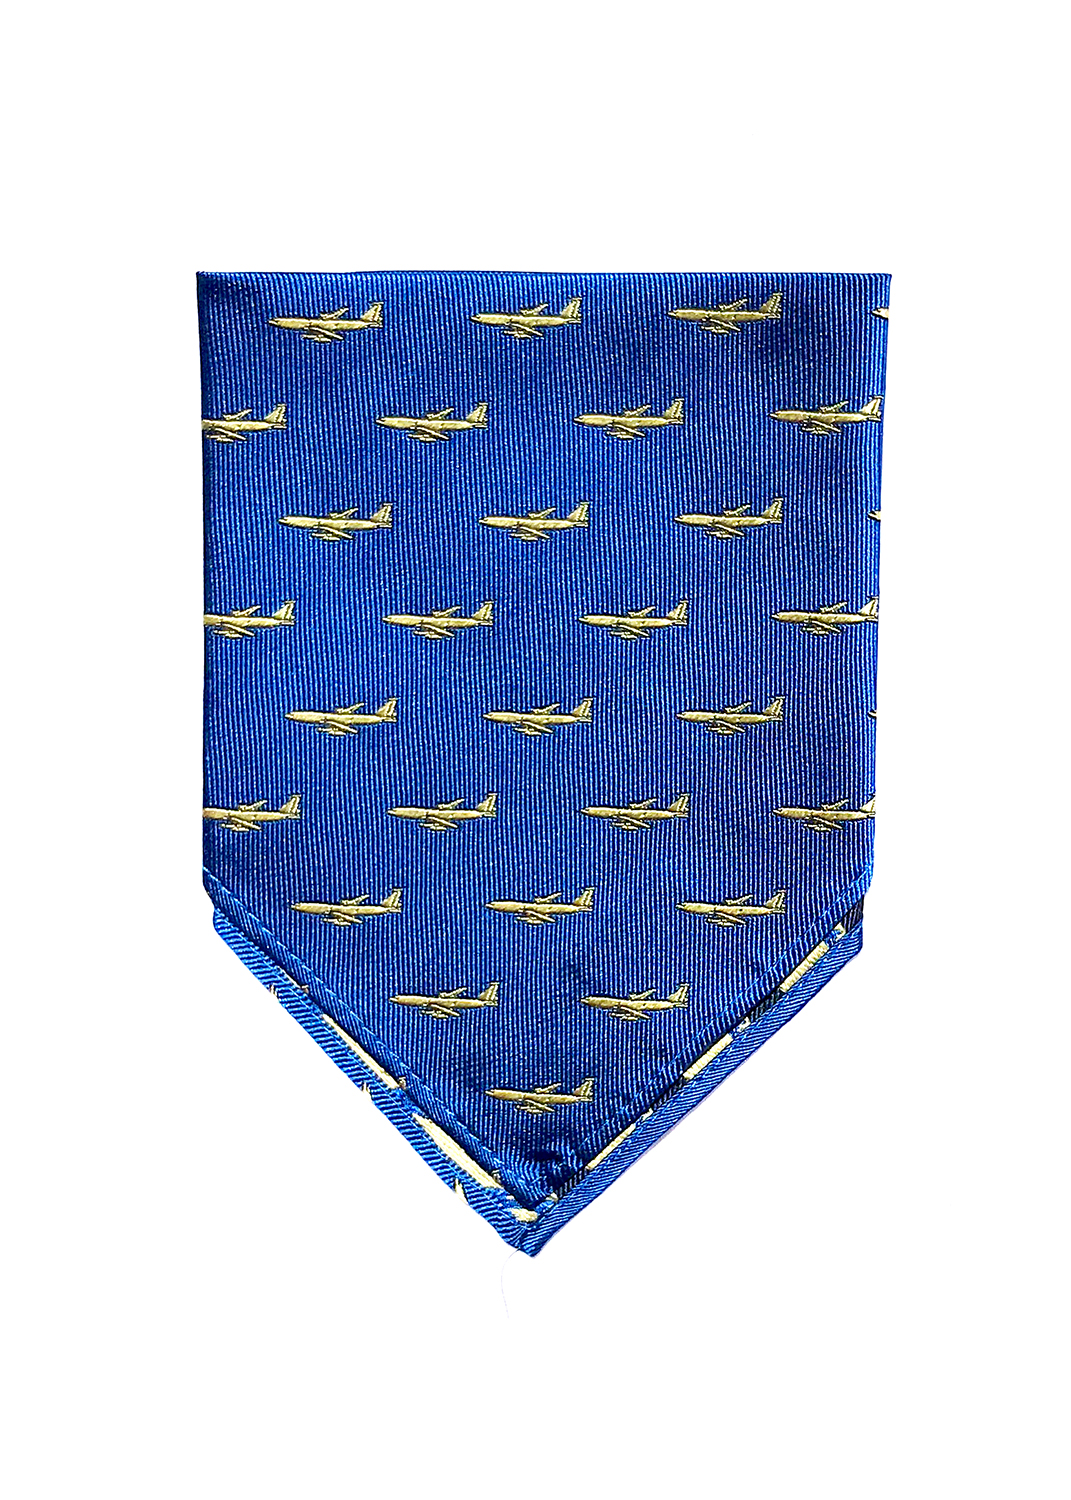 doppeldecker design aviation aircraft airplane pocket square kc135